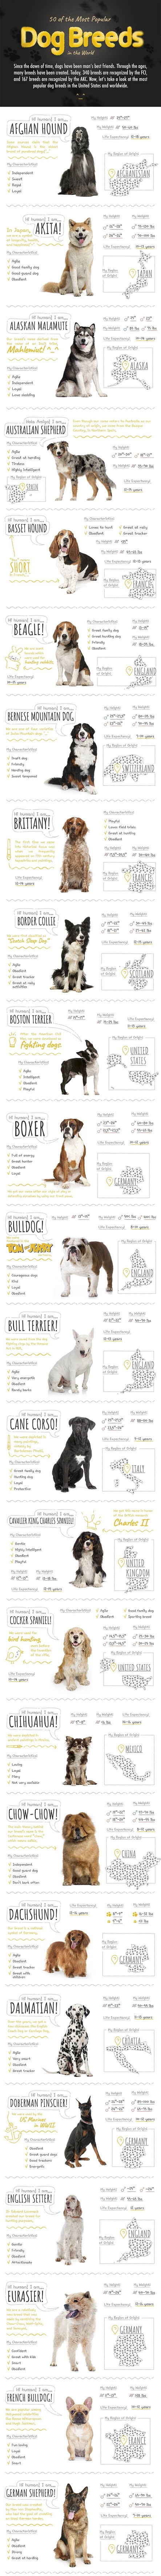 50 of the Most Popular Dog Breeds in the World #infographic #Dog Breeds #Animals #infographics #World #Most Popular Dog #Infographic #Popular Dog Breeds